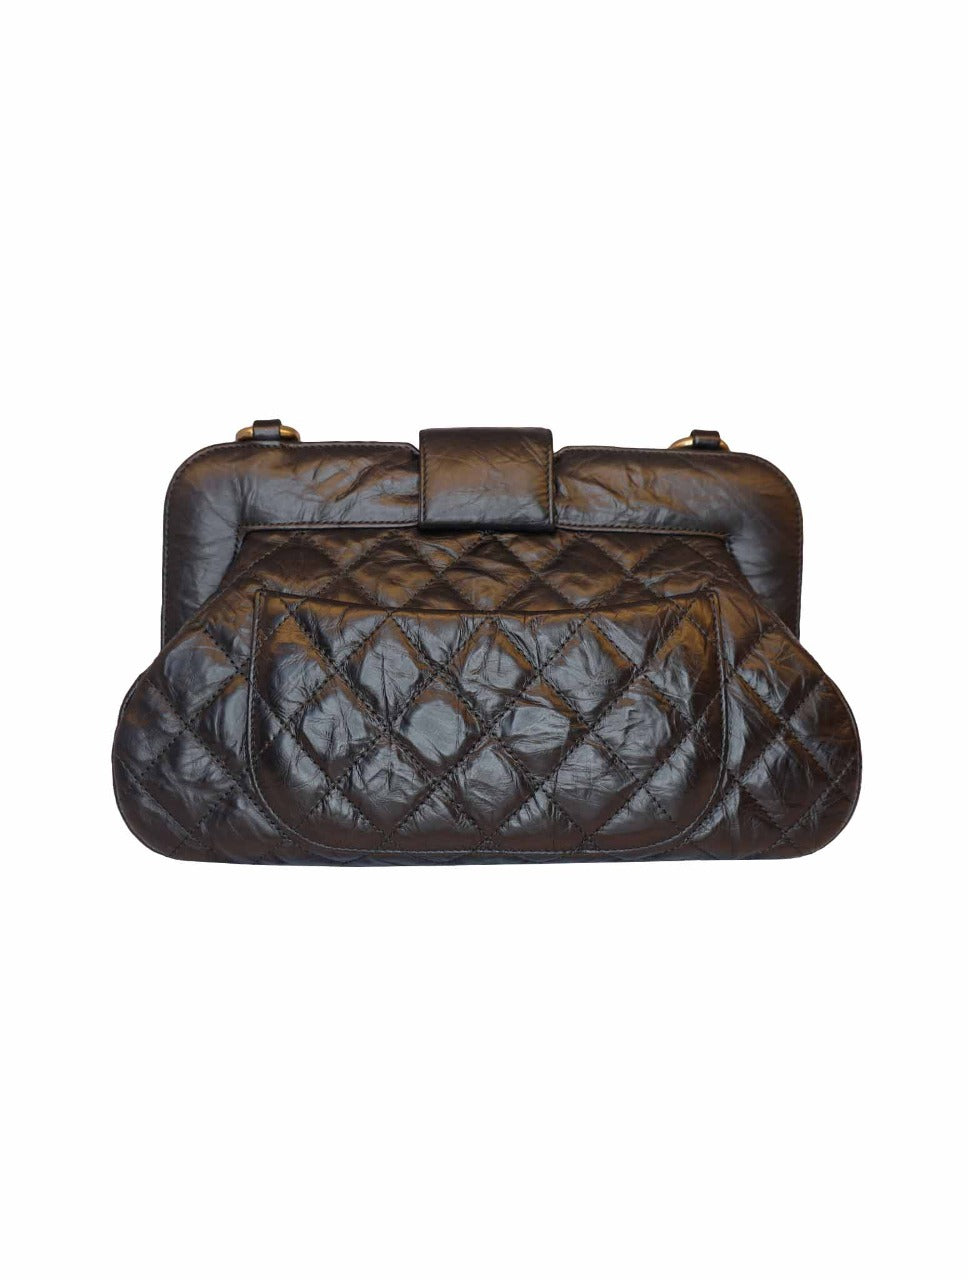 BLACK CALFSKIN LEATHER CHIC QUILT HOBO BAG